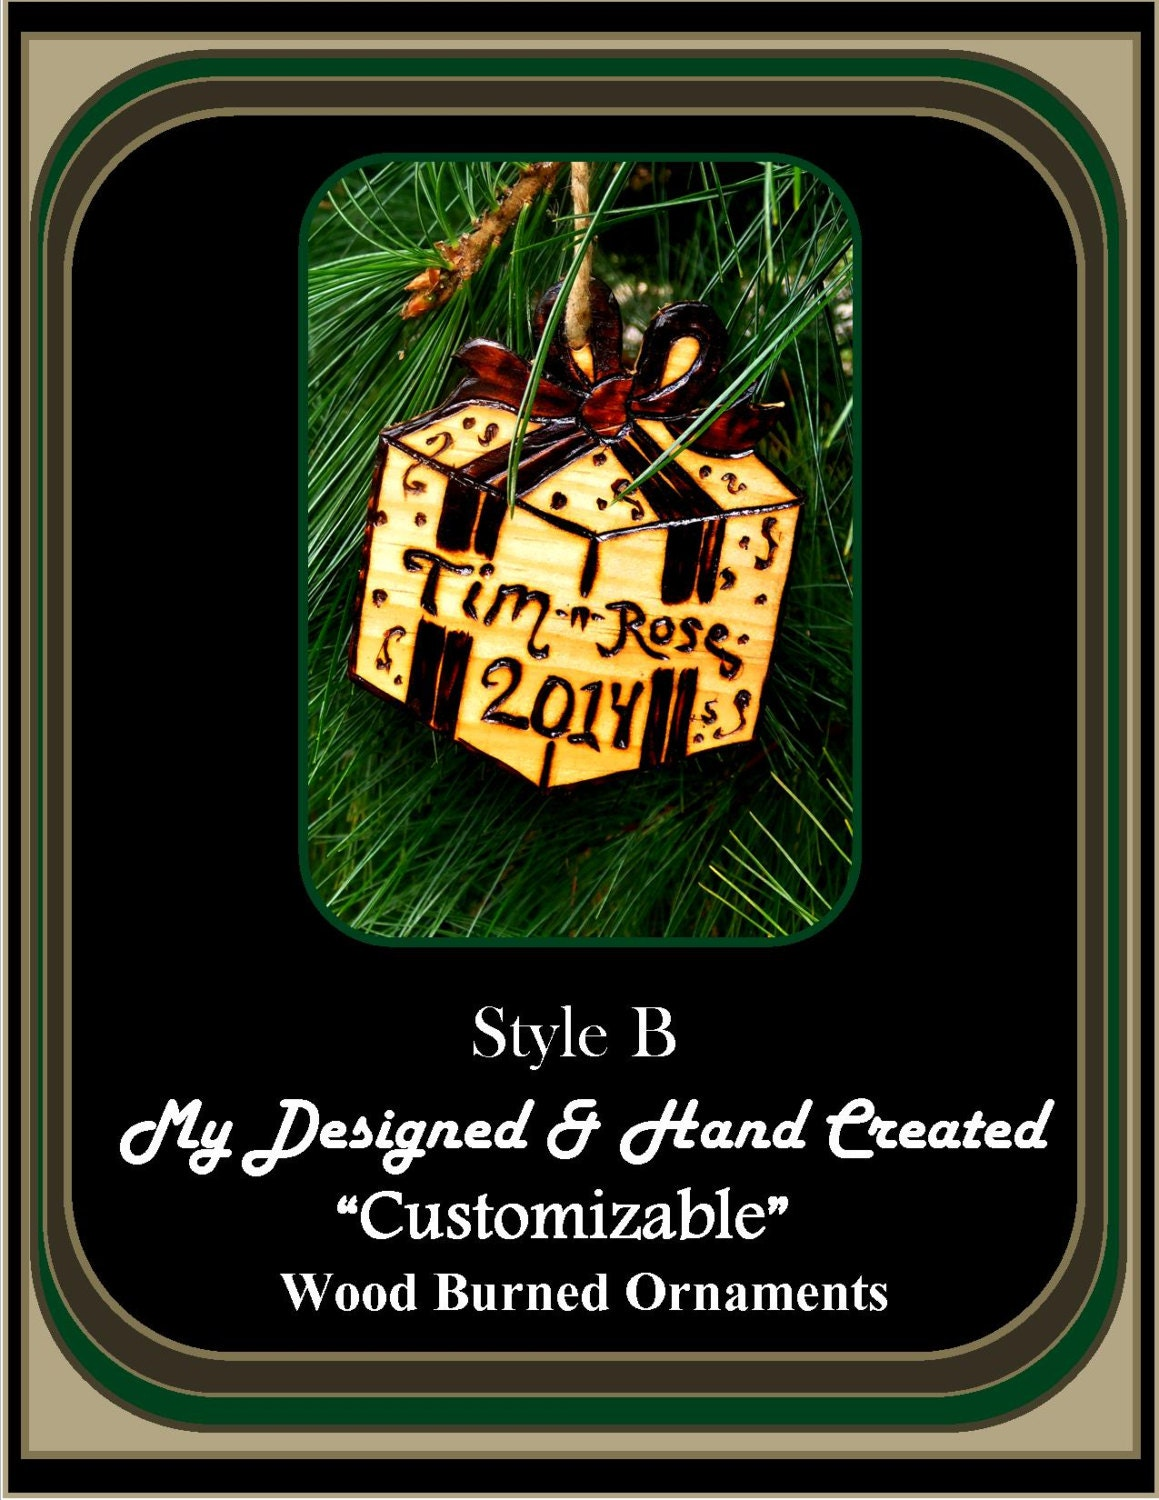 Newlywed ornament - Gallery Photo Gallery Photo Gallery Photo Gallery Photo Gallery Photo